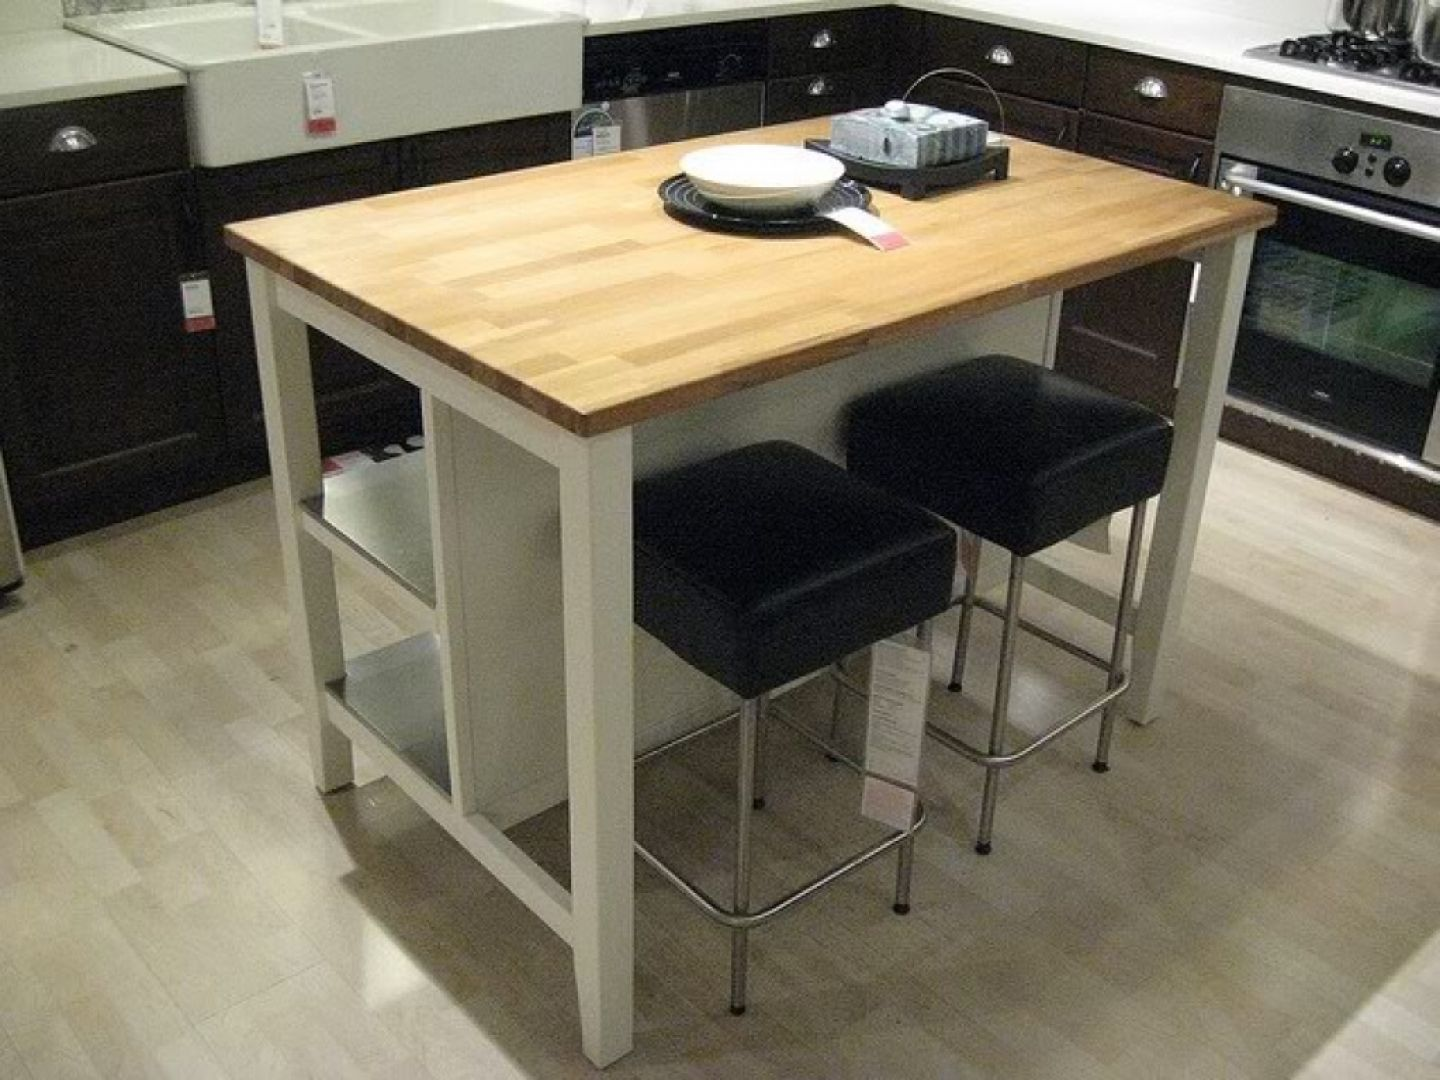 Creative Want It Now Ikea Kitchen Island Picture House Pinterest Island Pictures Kitchens